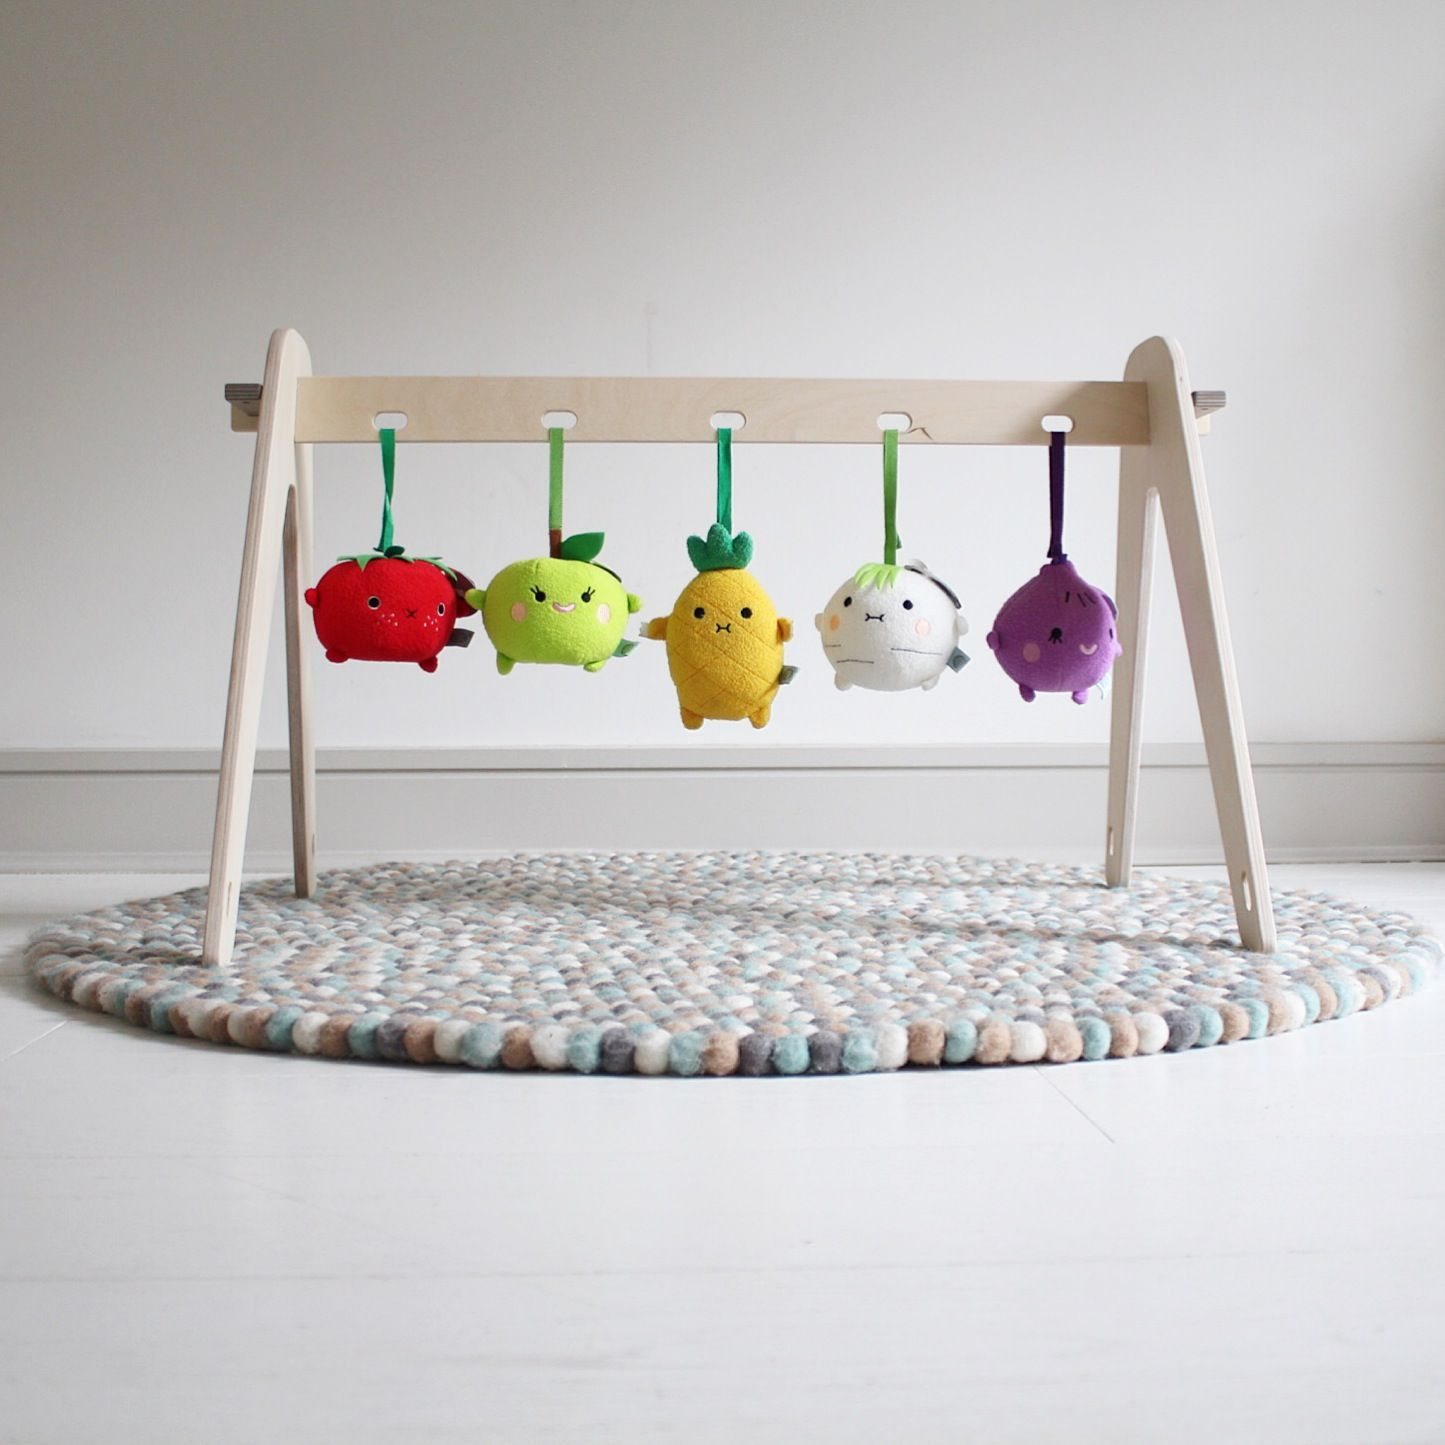 Cute Wooden Baby Gym To Diy Children Baby Kinderzimmer Baby Handmade Wooden Baby Play Gym With Noodoll Fruit And